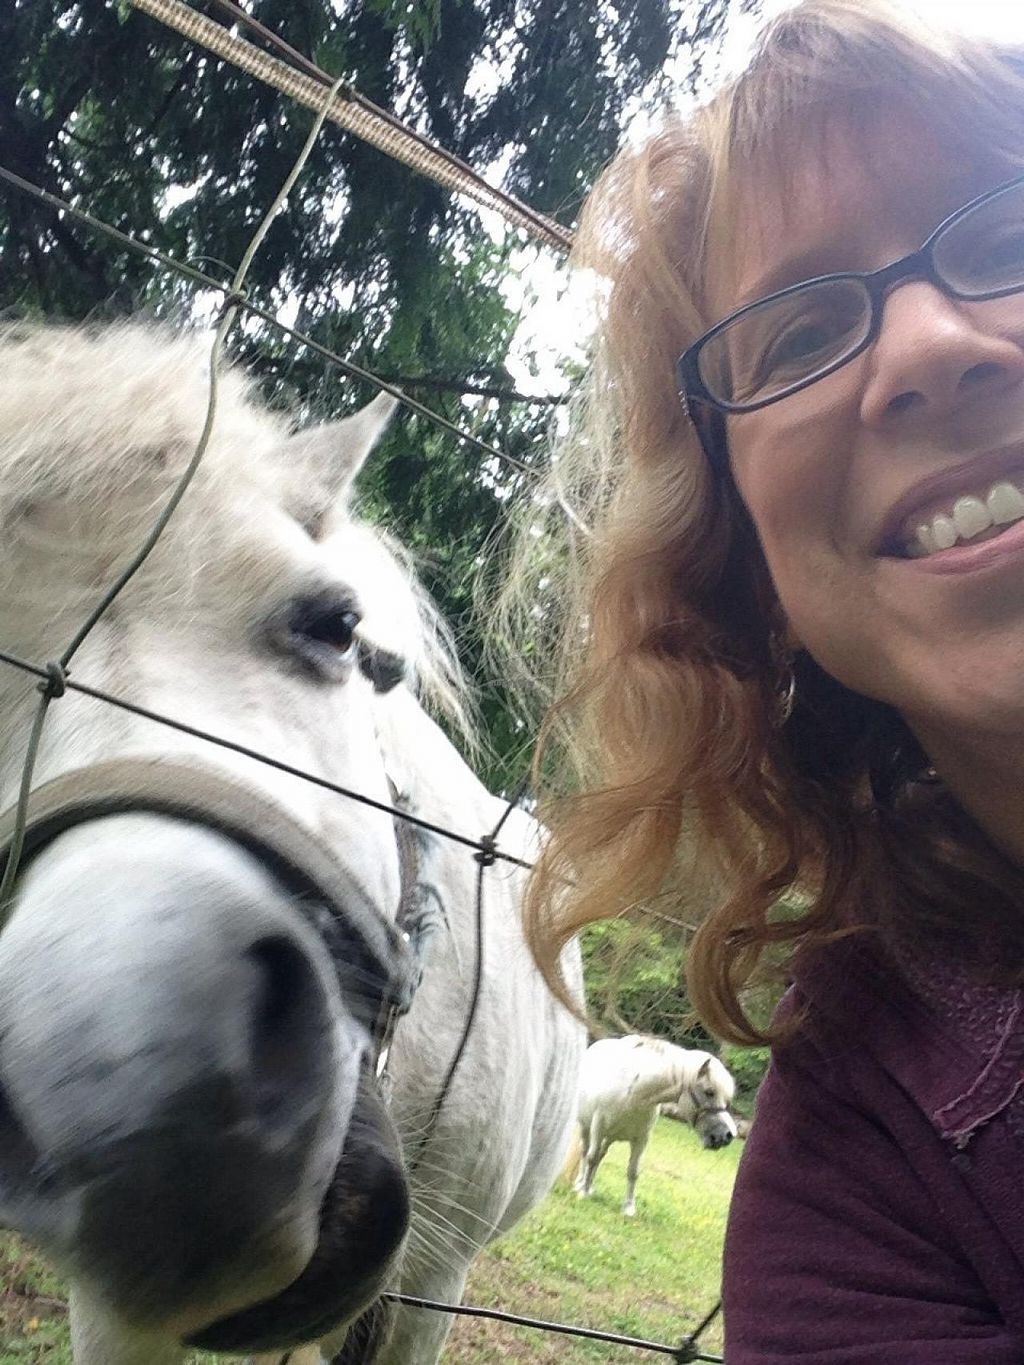 """Photo of Someday Farm Vegan Bed and Breakfast  by <a href=""""/members/profile/BethanyDavis"""">BethanyDavis</a> <br/>Selfie (*for the horse!) <br/> August 3, 2014  - <a href='/contact/abuse/image/30230/75904'>Report</a>"""